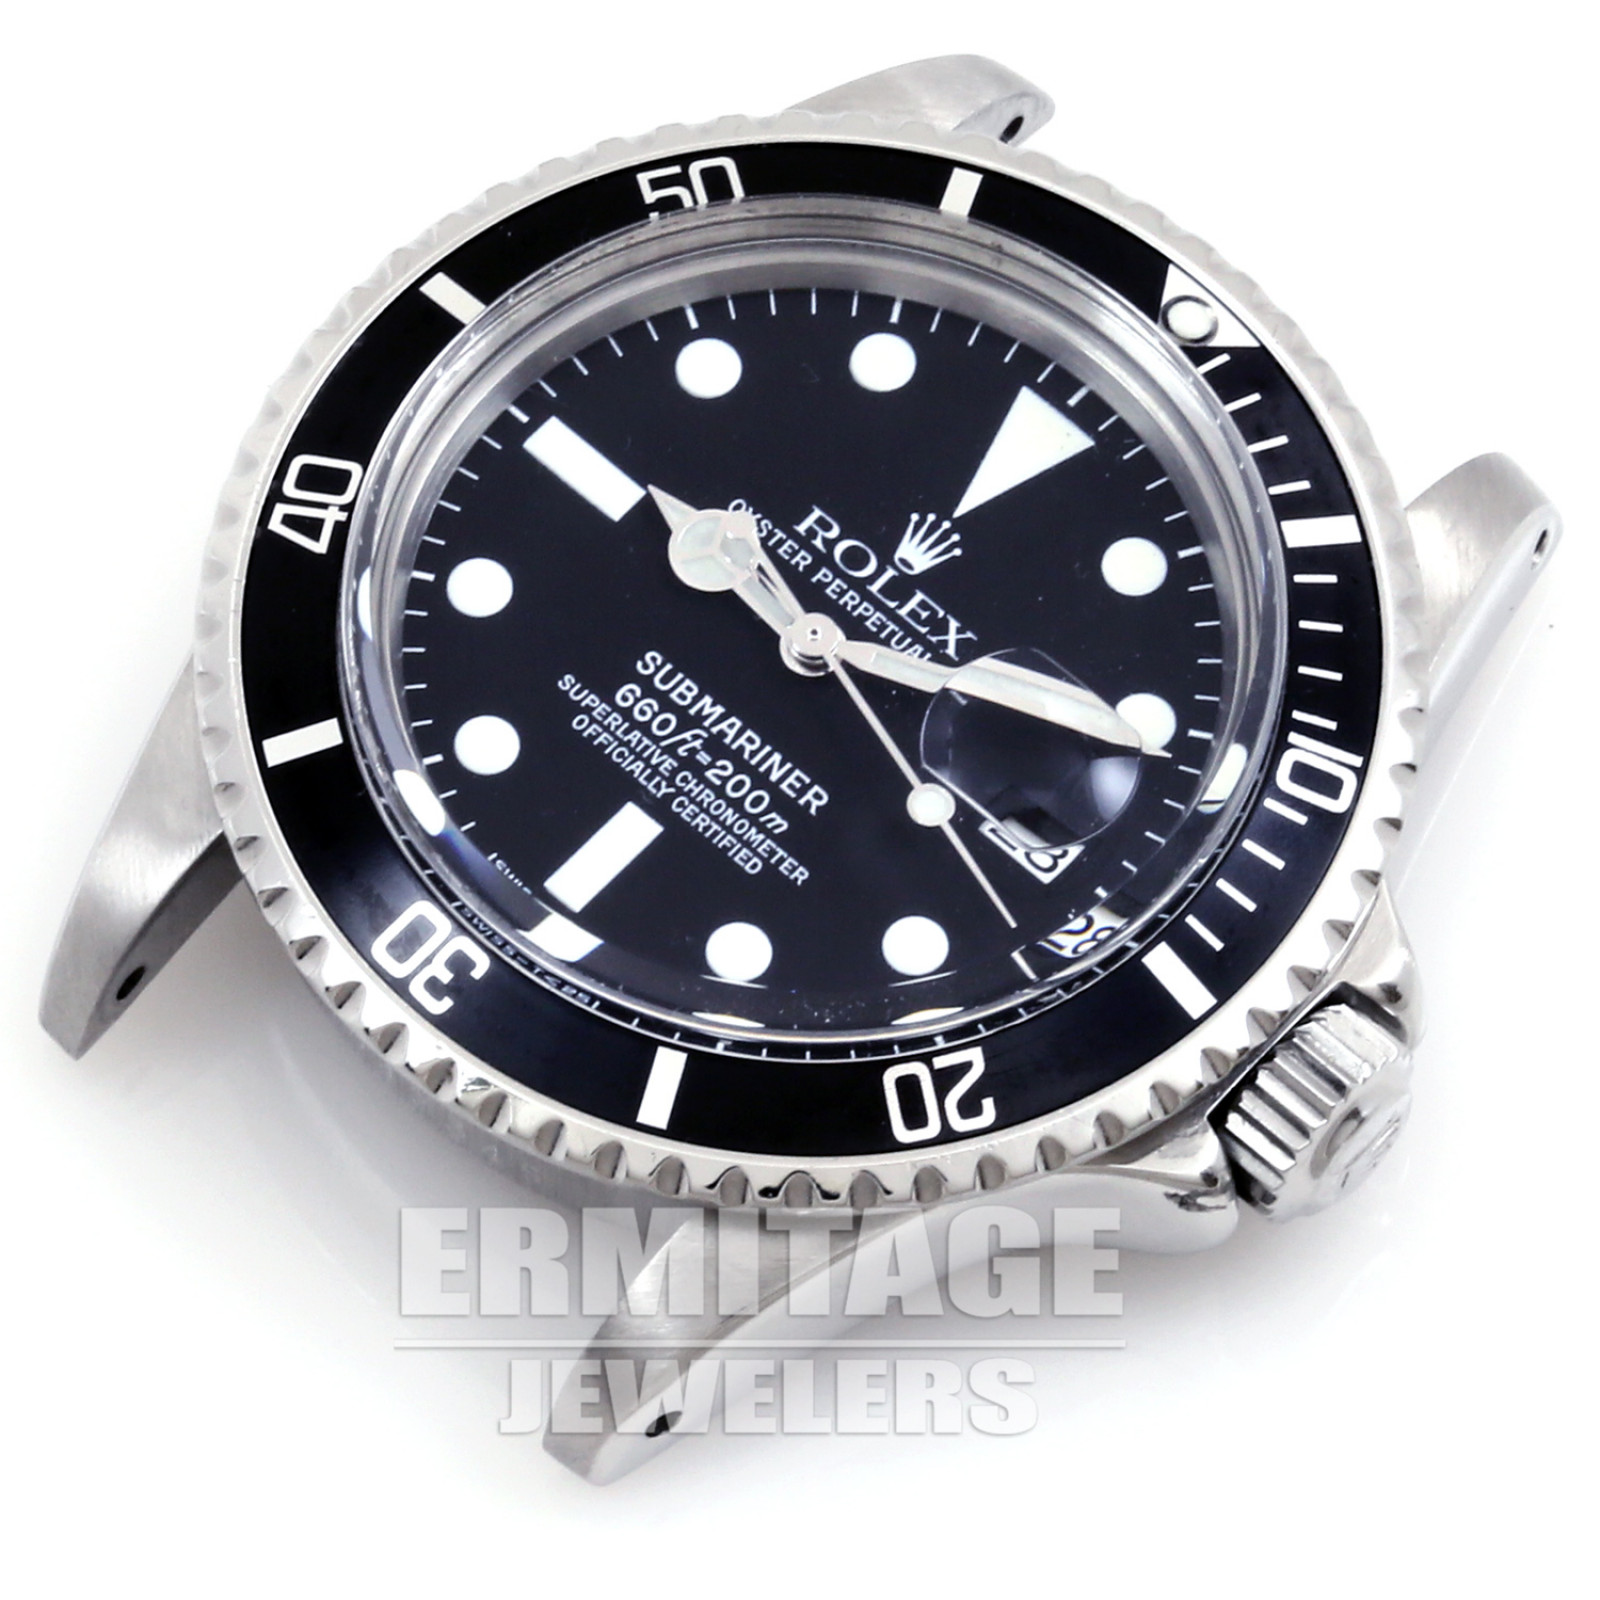 Vintage Rolex Submariner 1680 Black